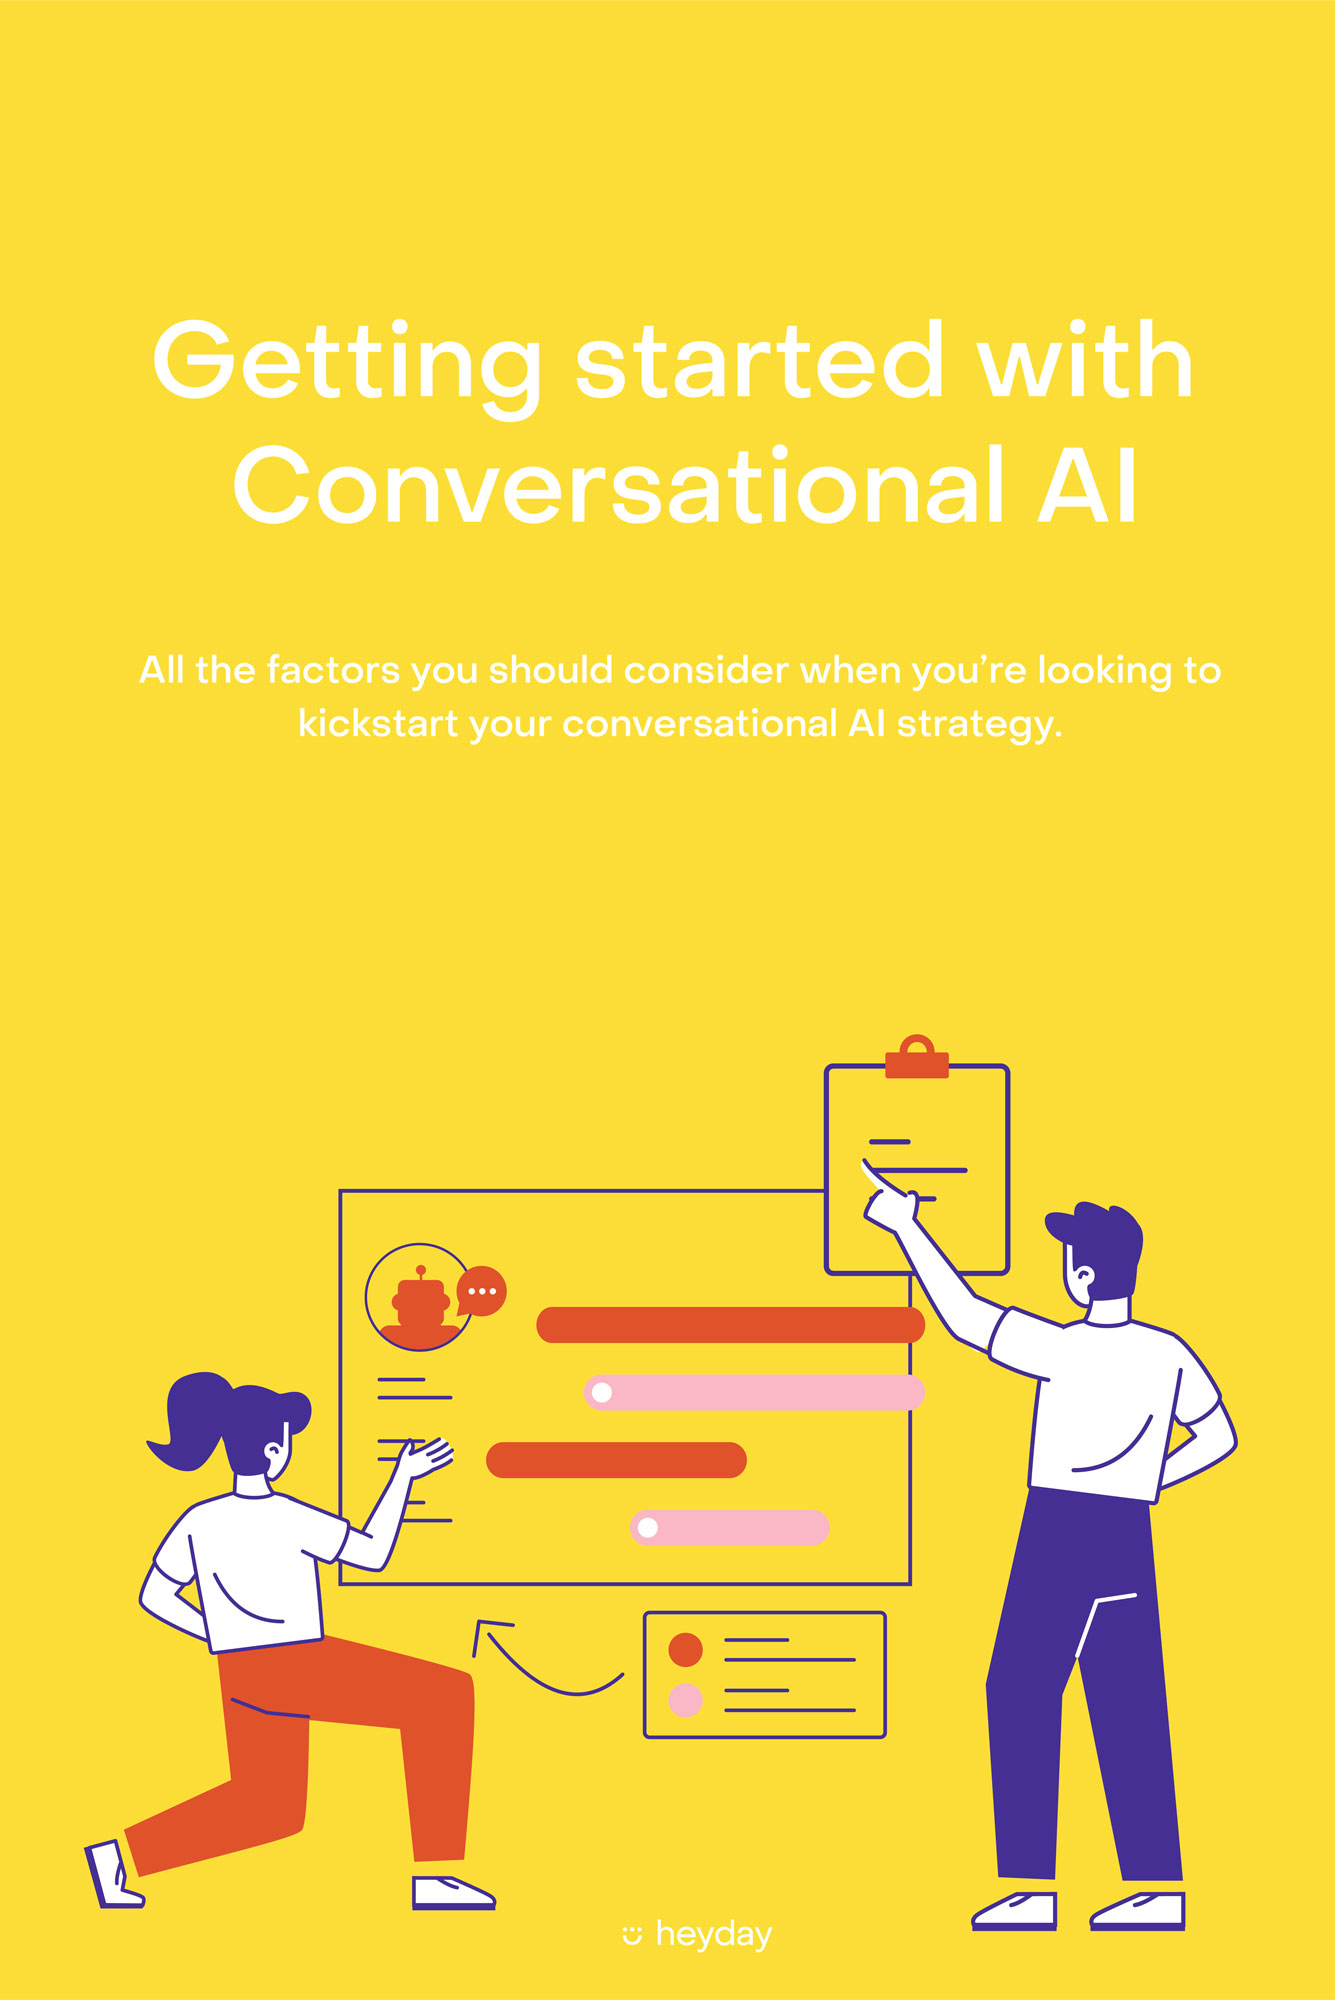 Getting started with conversational AI